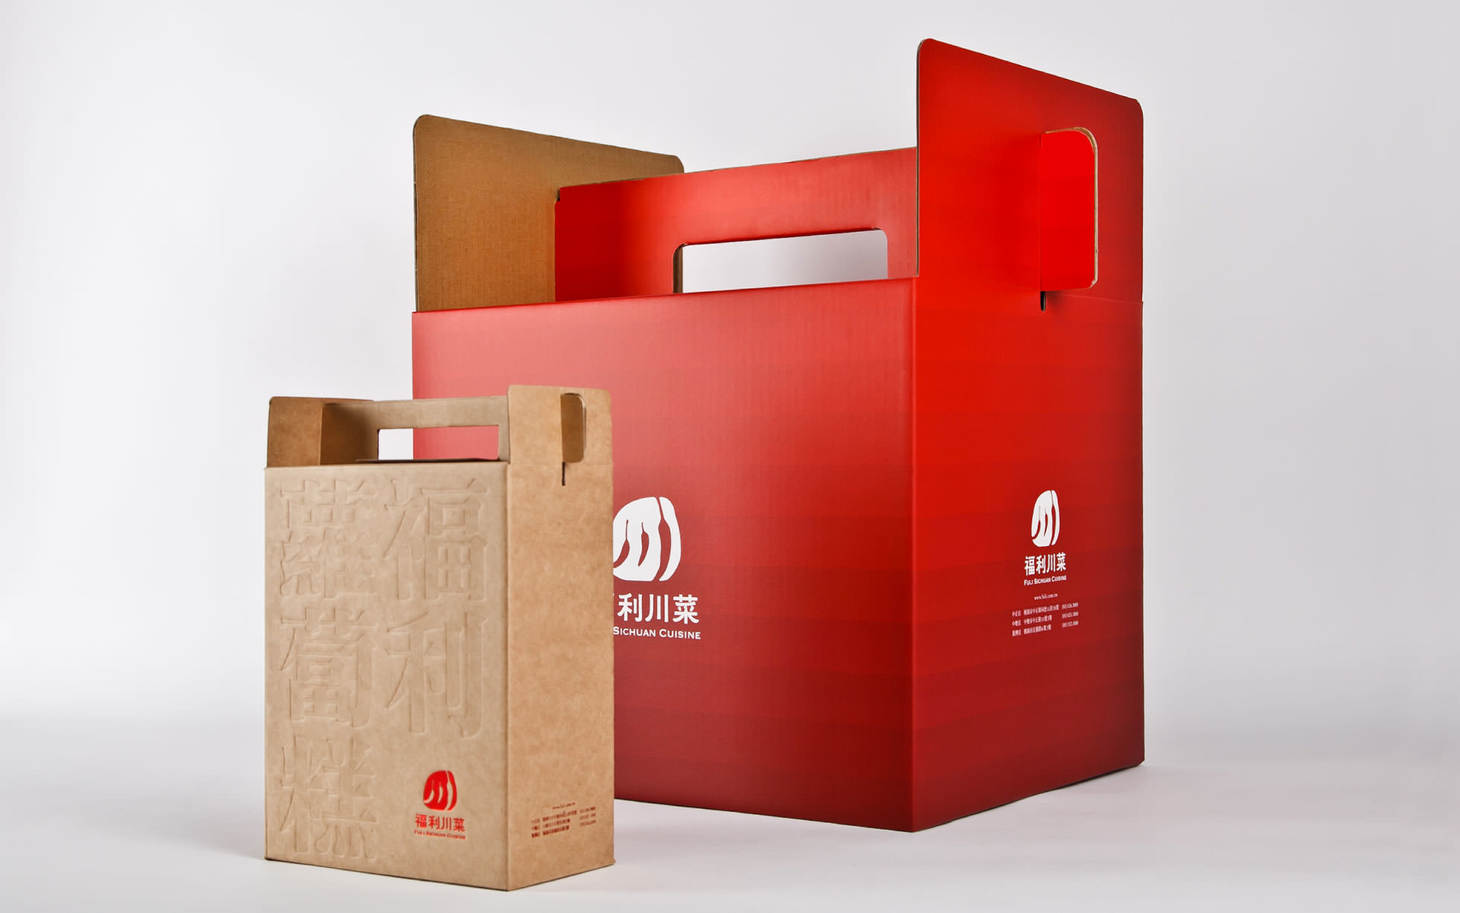 FULI_packaging_20150225_1.jpg